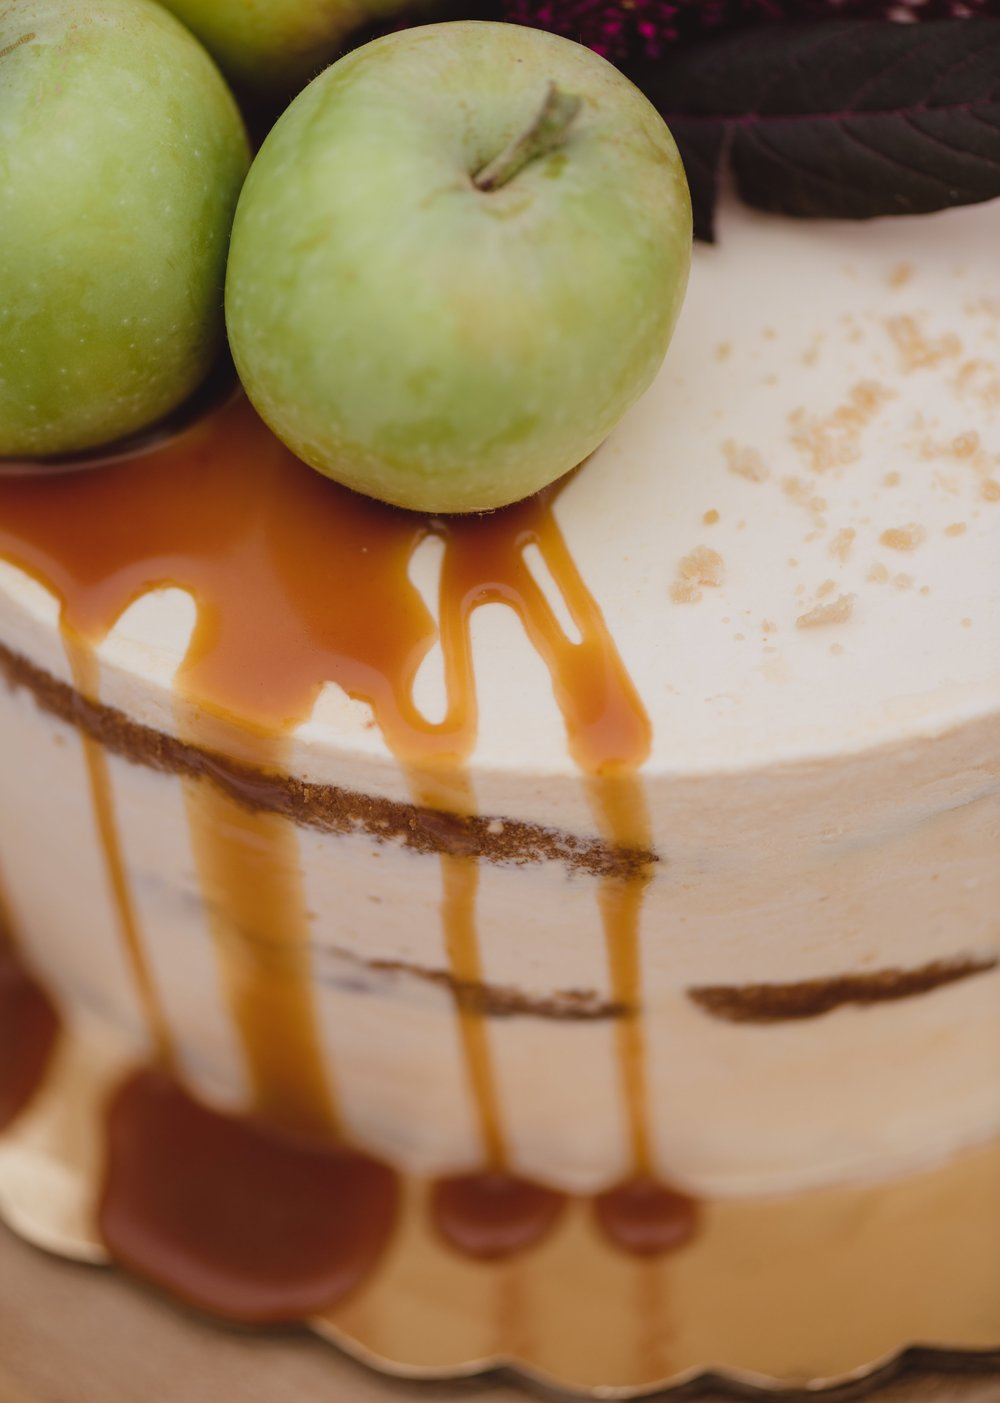 Salted Caramel drip cake - caramel sauce recipe by Cake Bloom